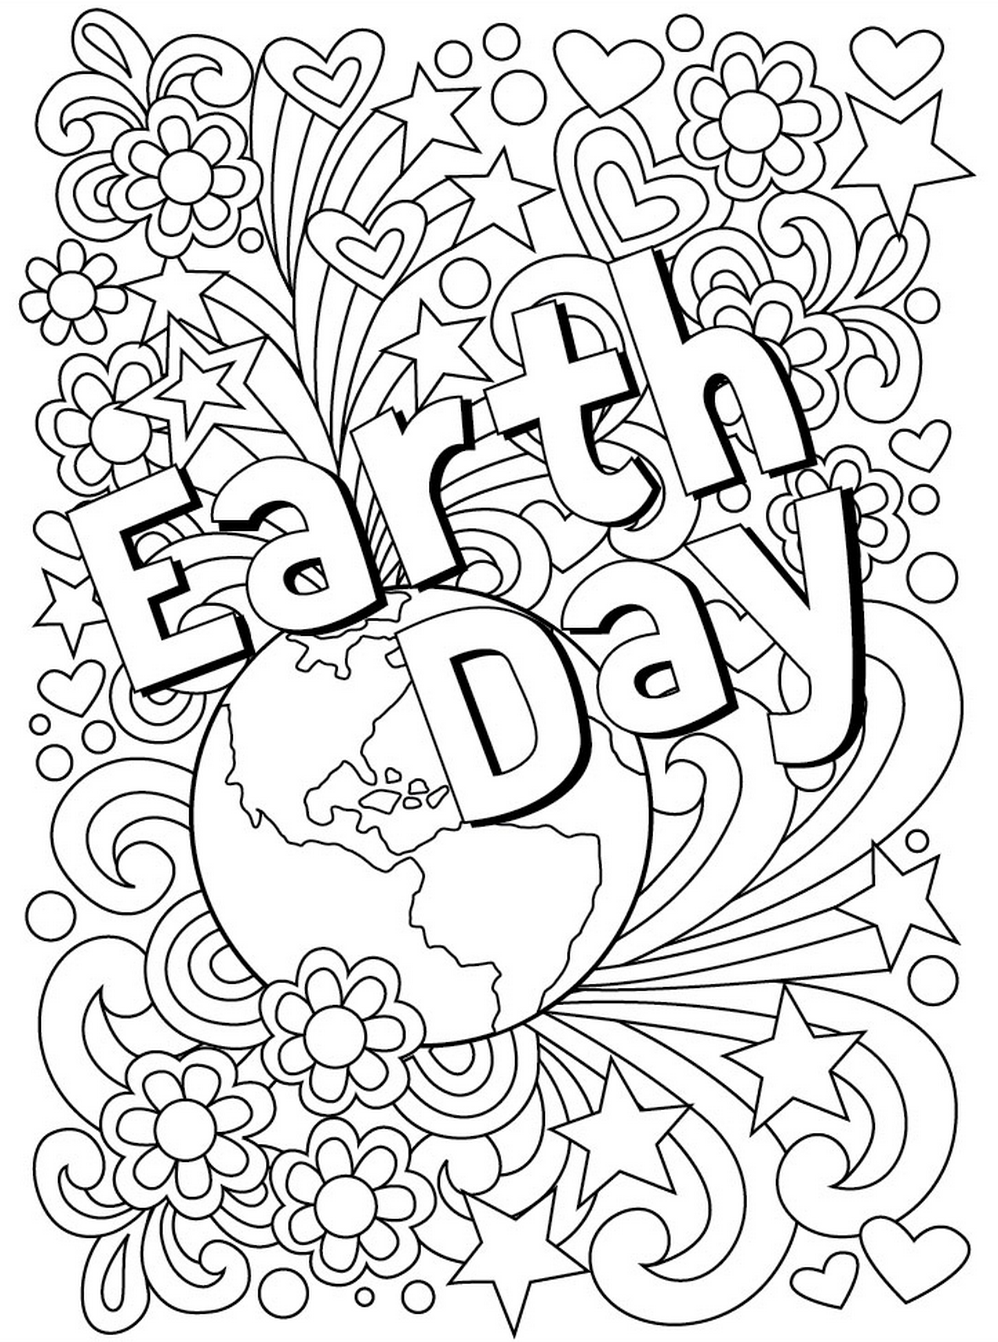 a coloring page for earth day